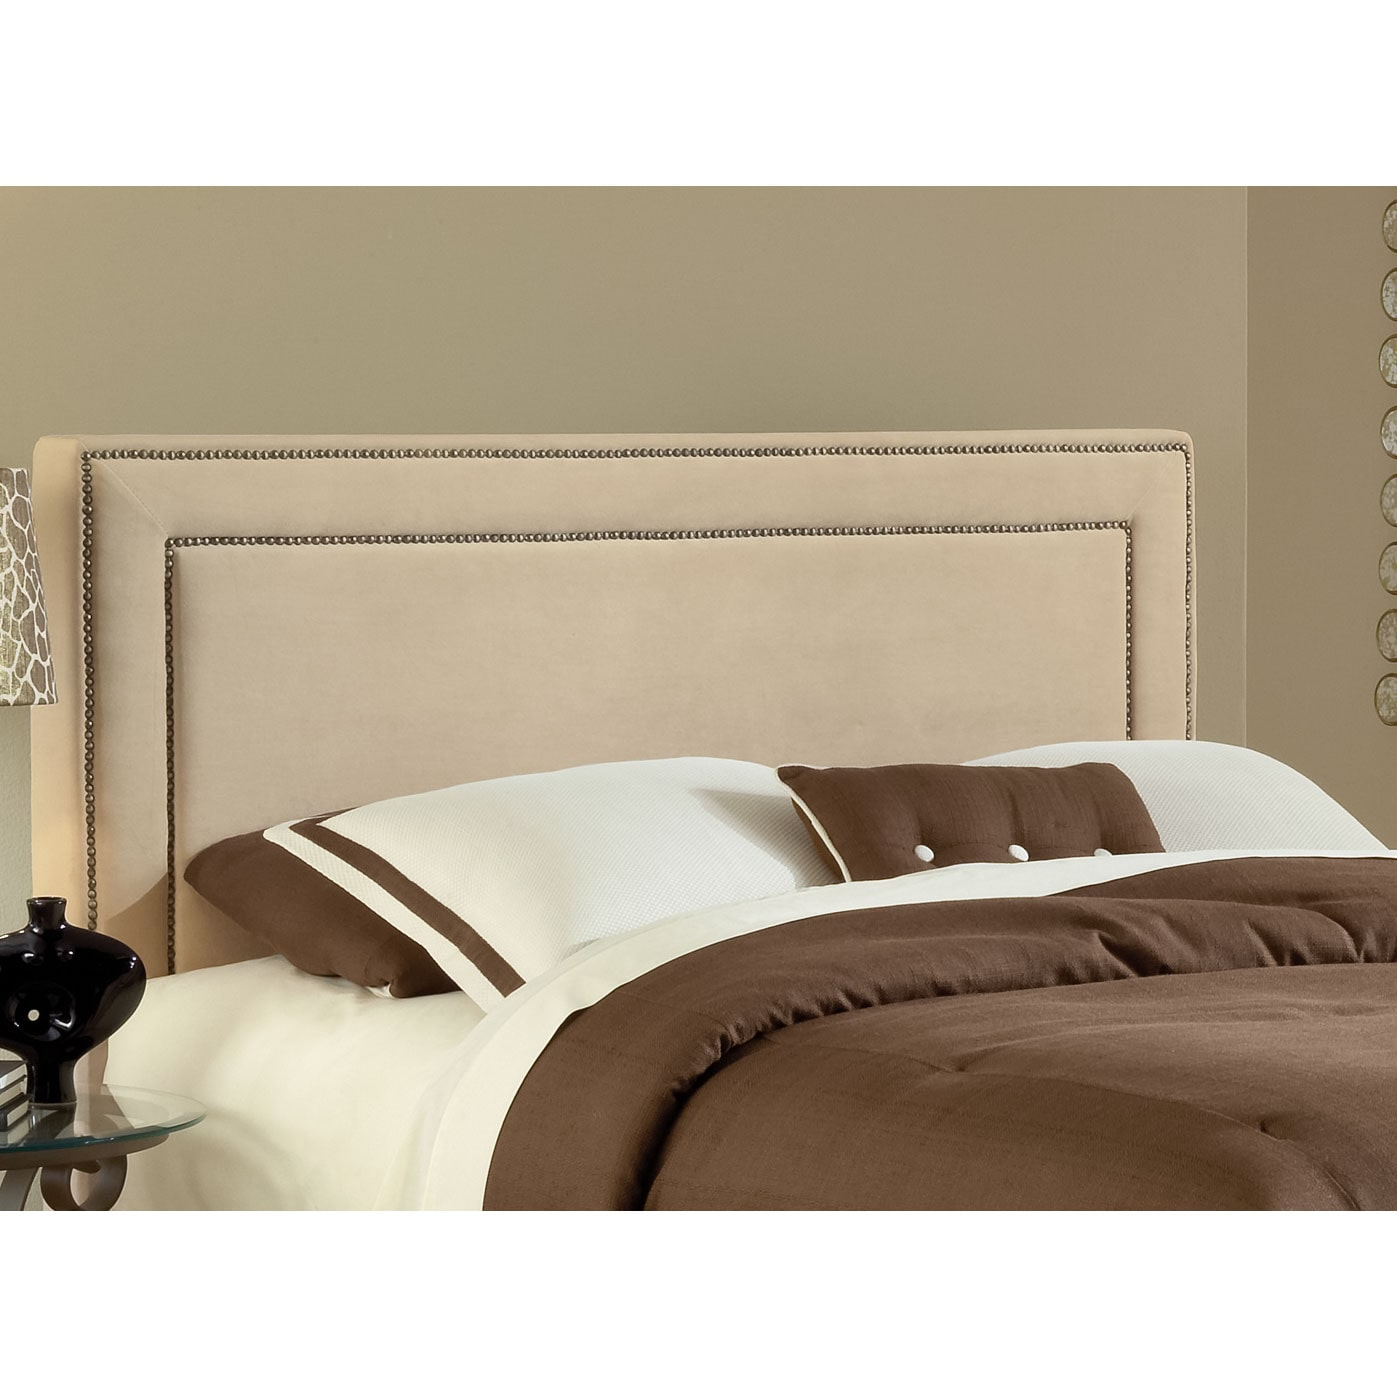 Amber queen upholstered headboard beige value city furniture and mattresses for Bedroom sets with upholstered headboards